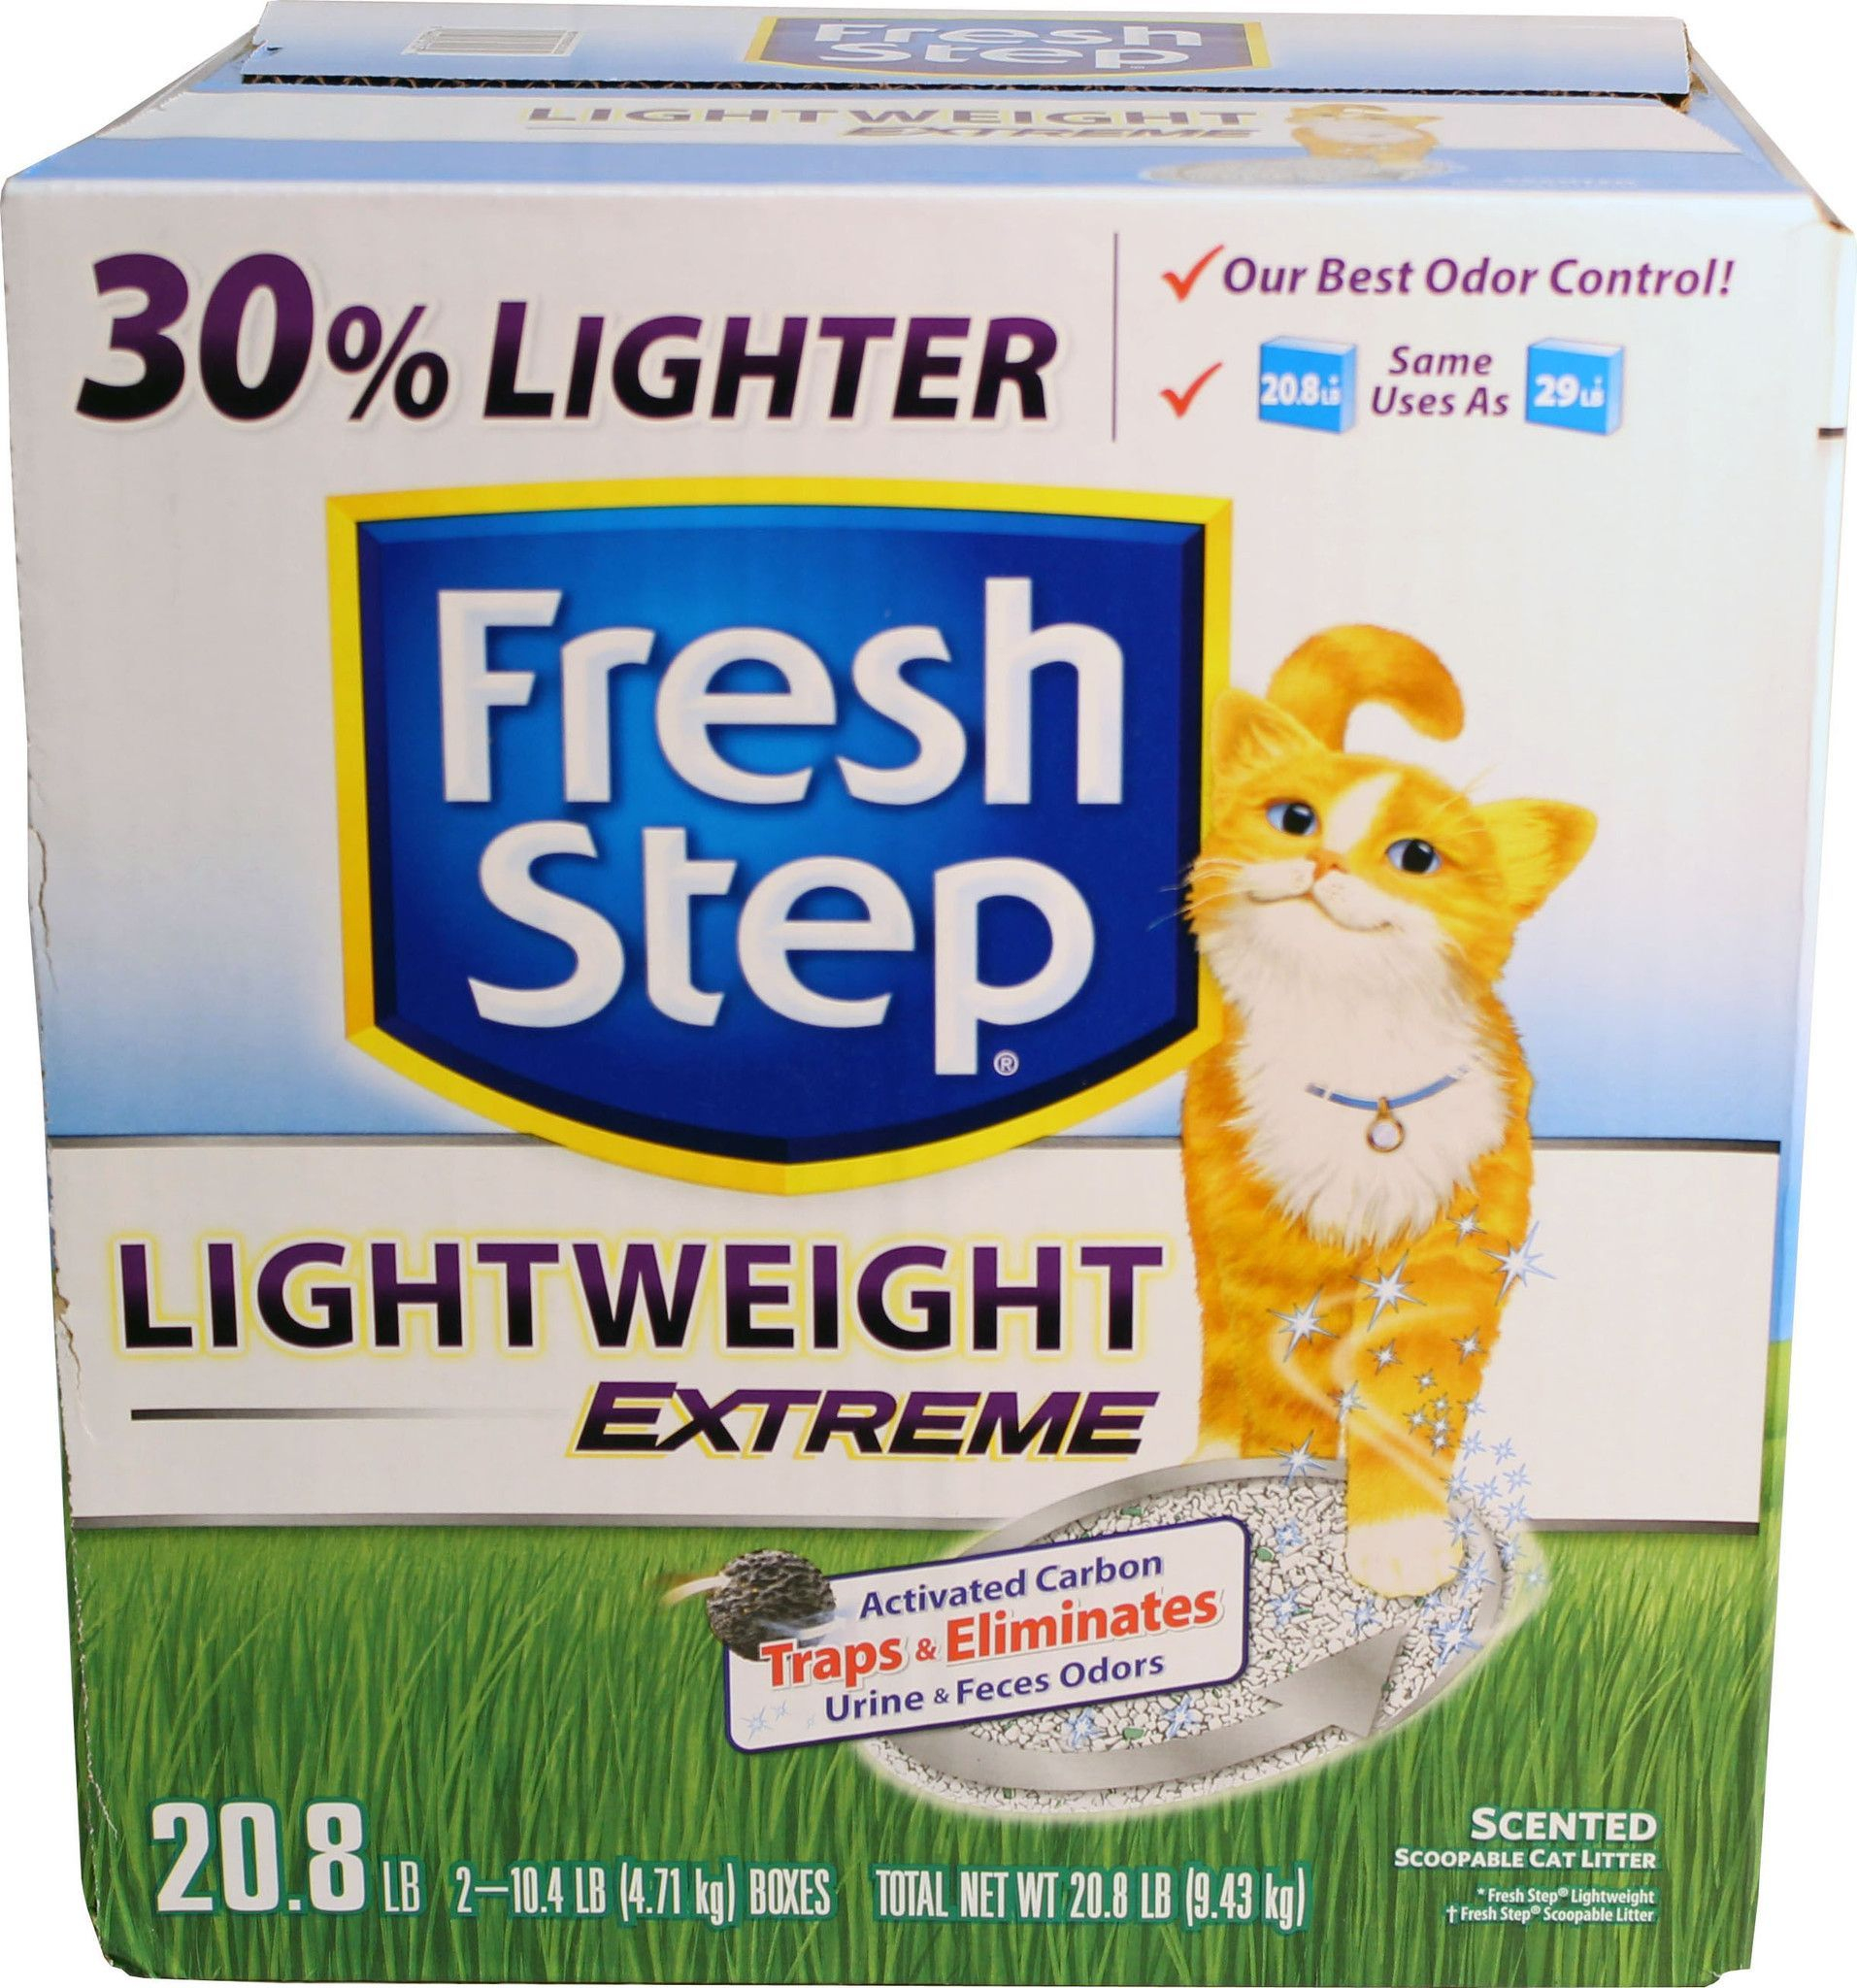 Fresh Step Lightweight Extreme Cat Litter | Products | Pinterest - Free Printable Scoop Away Coupons